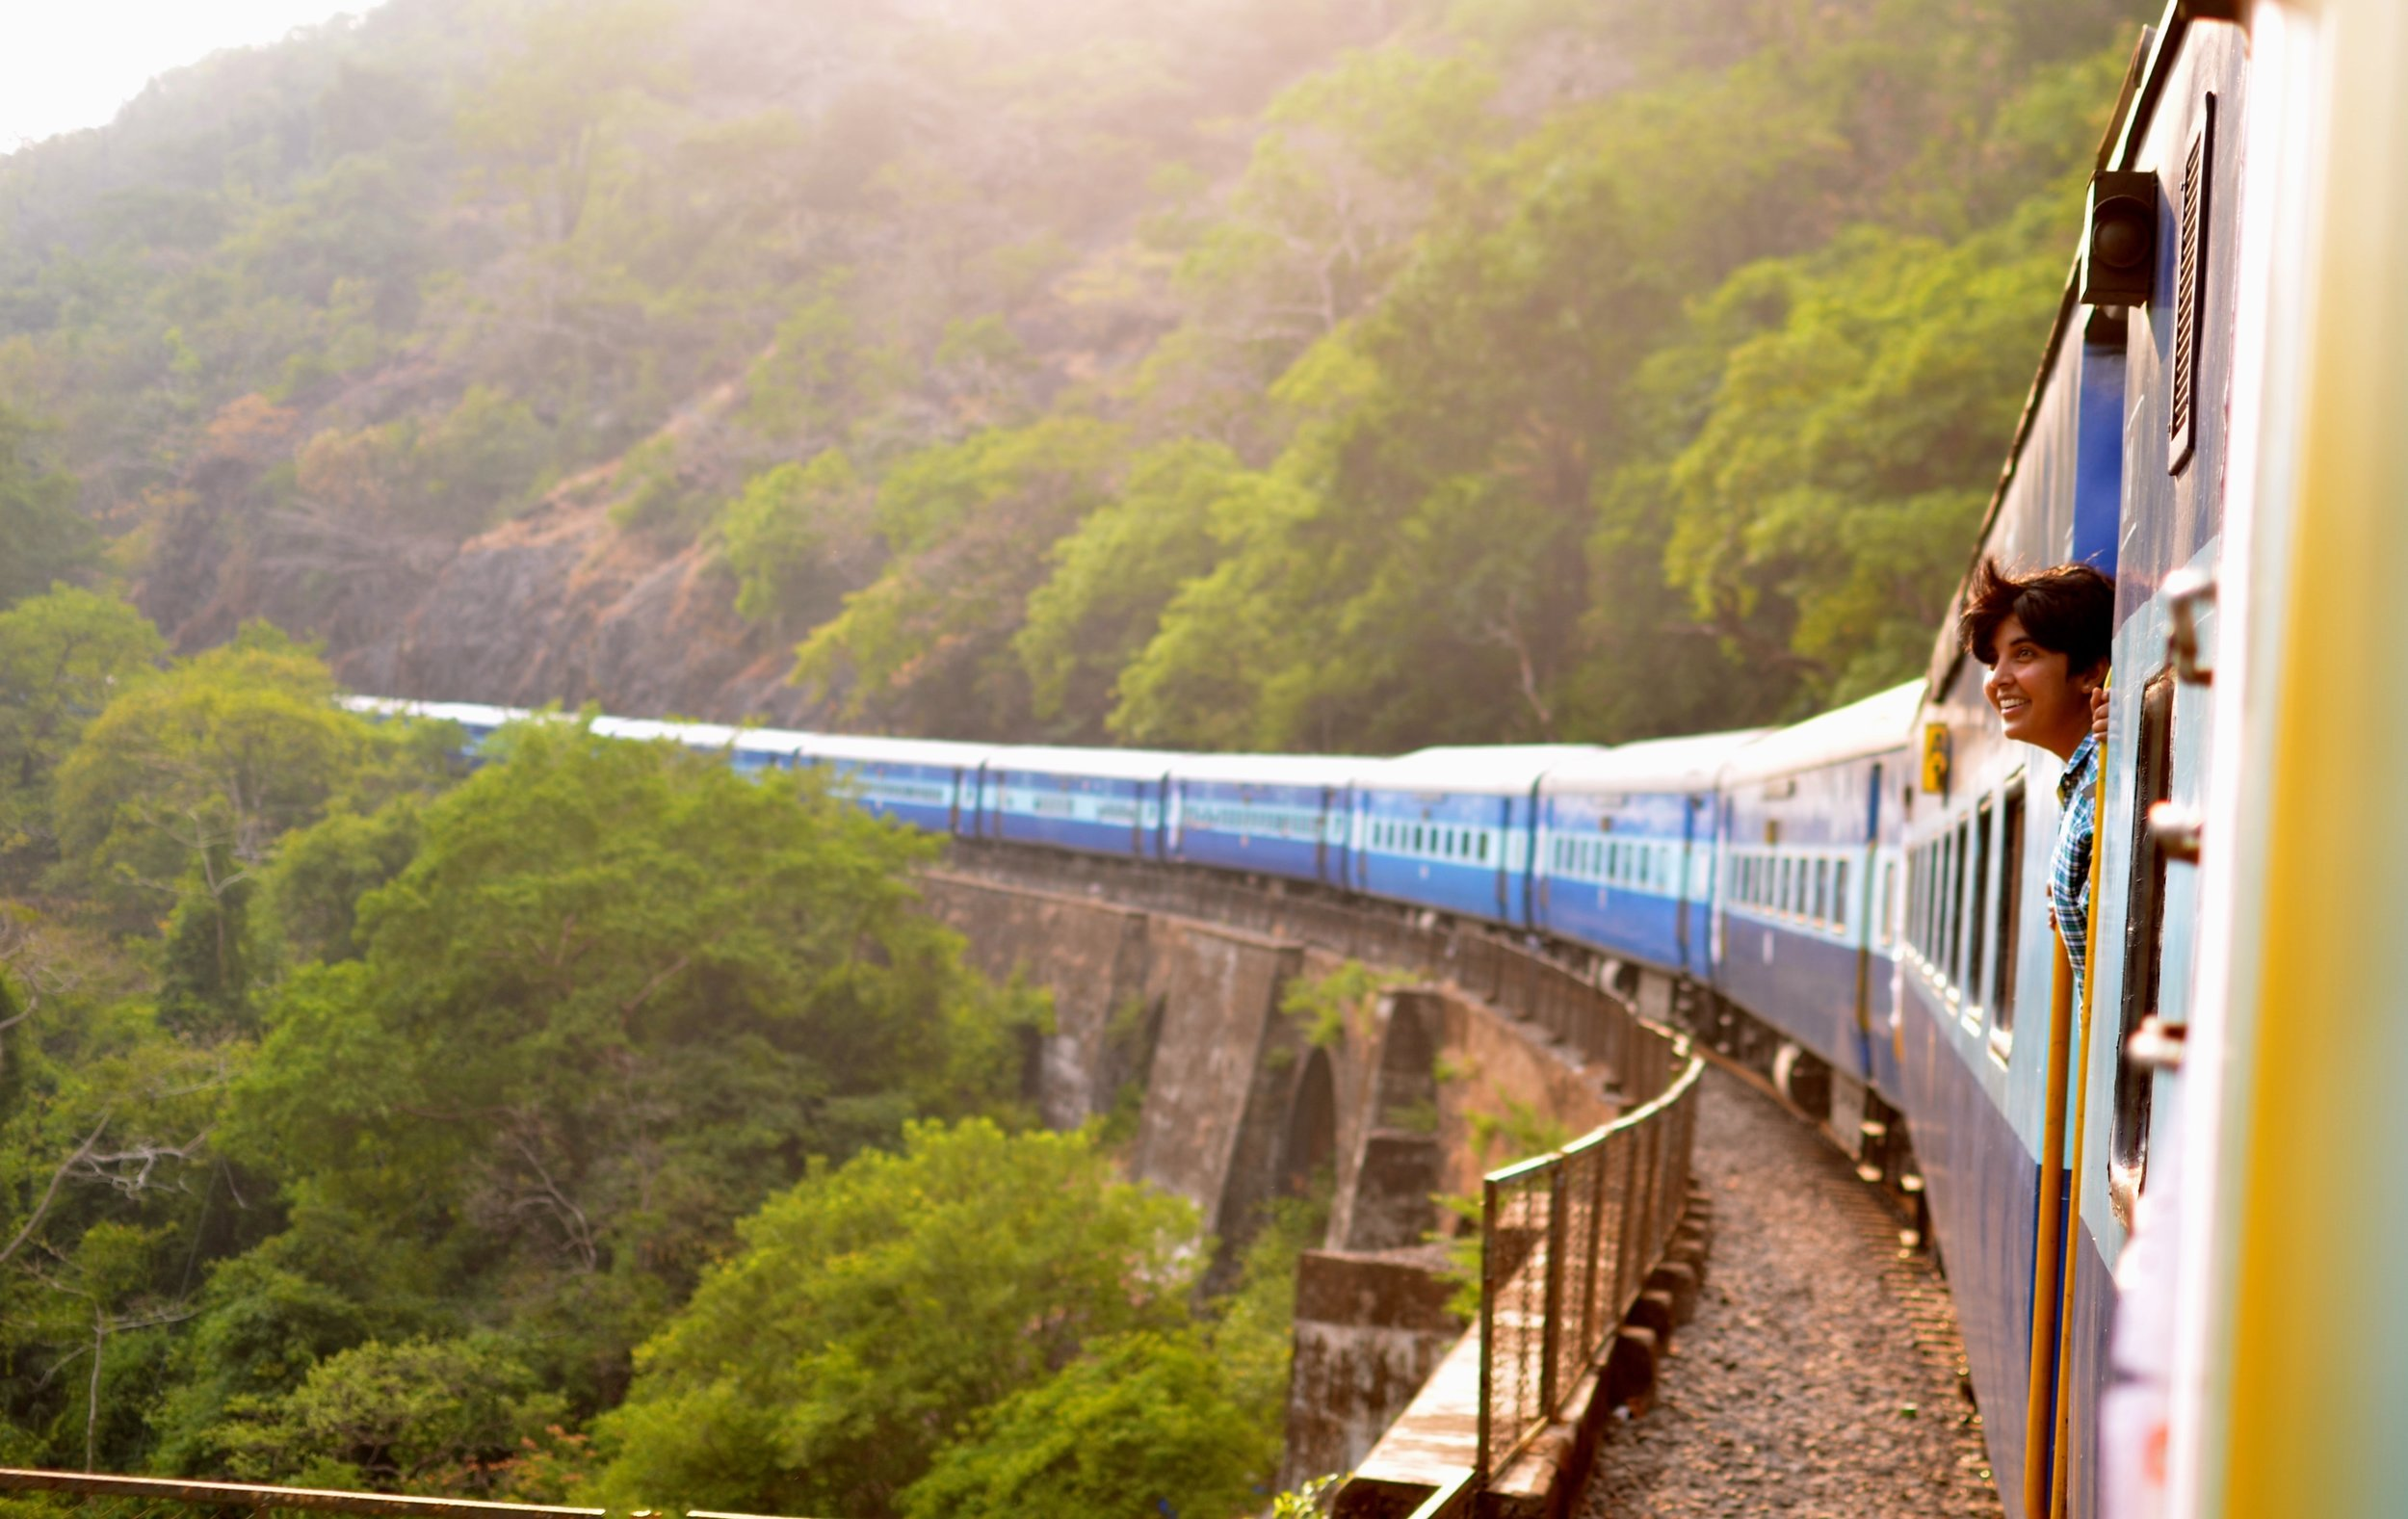 train in the mountains in india